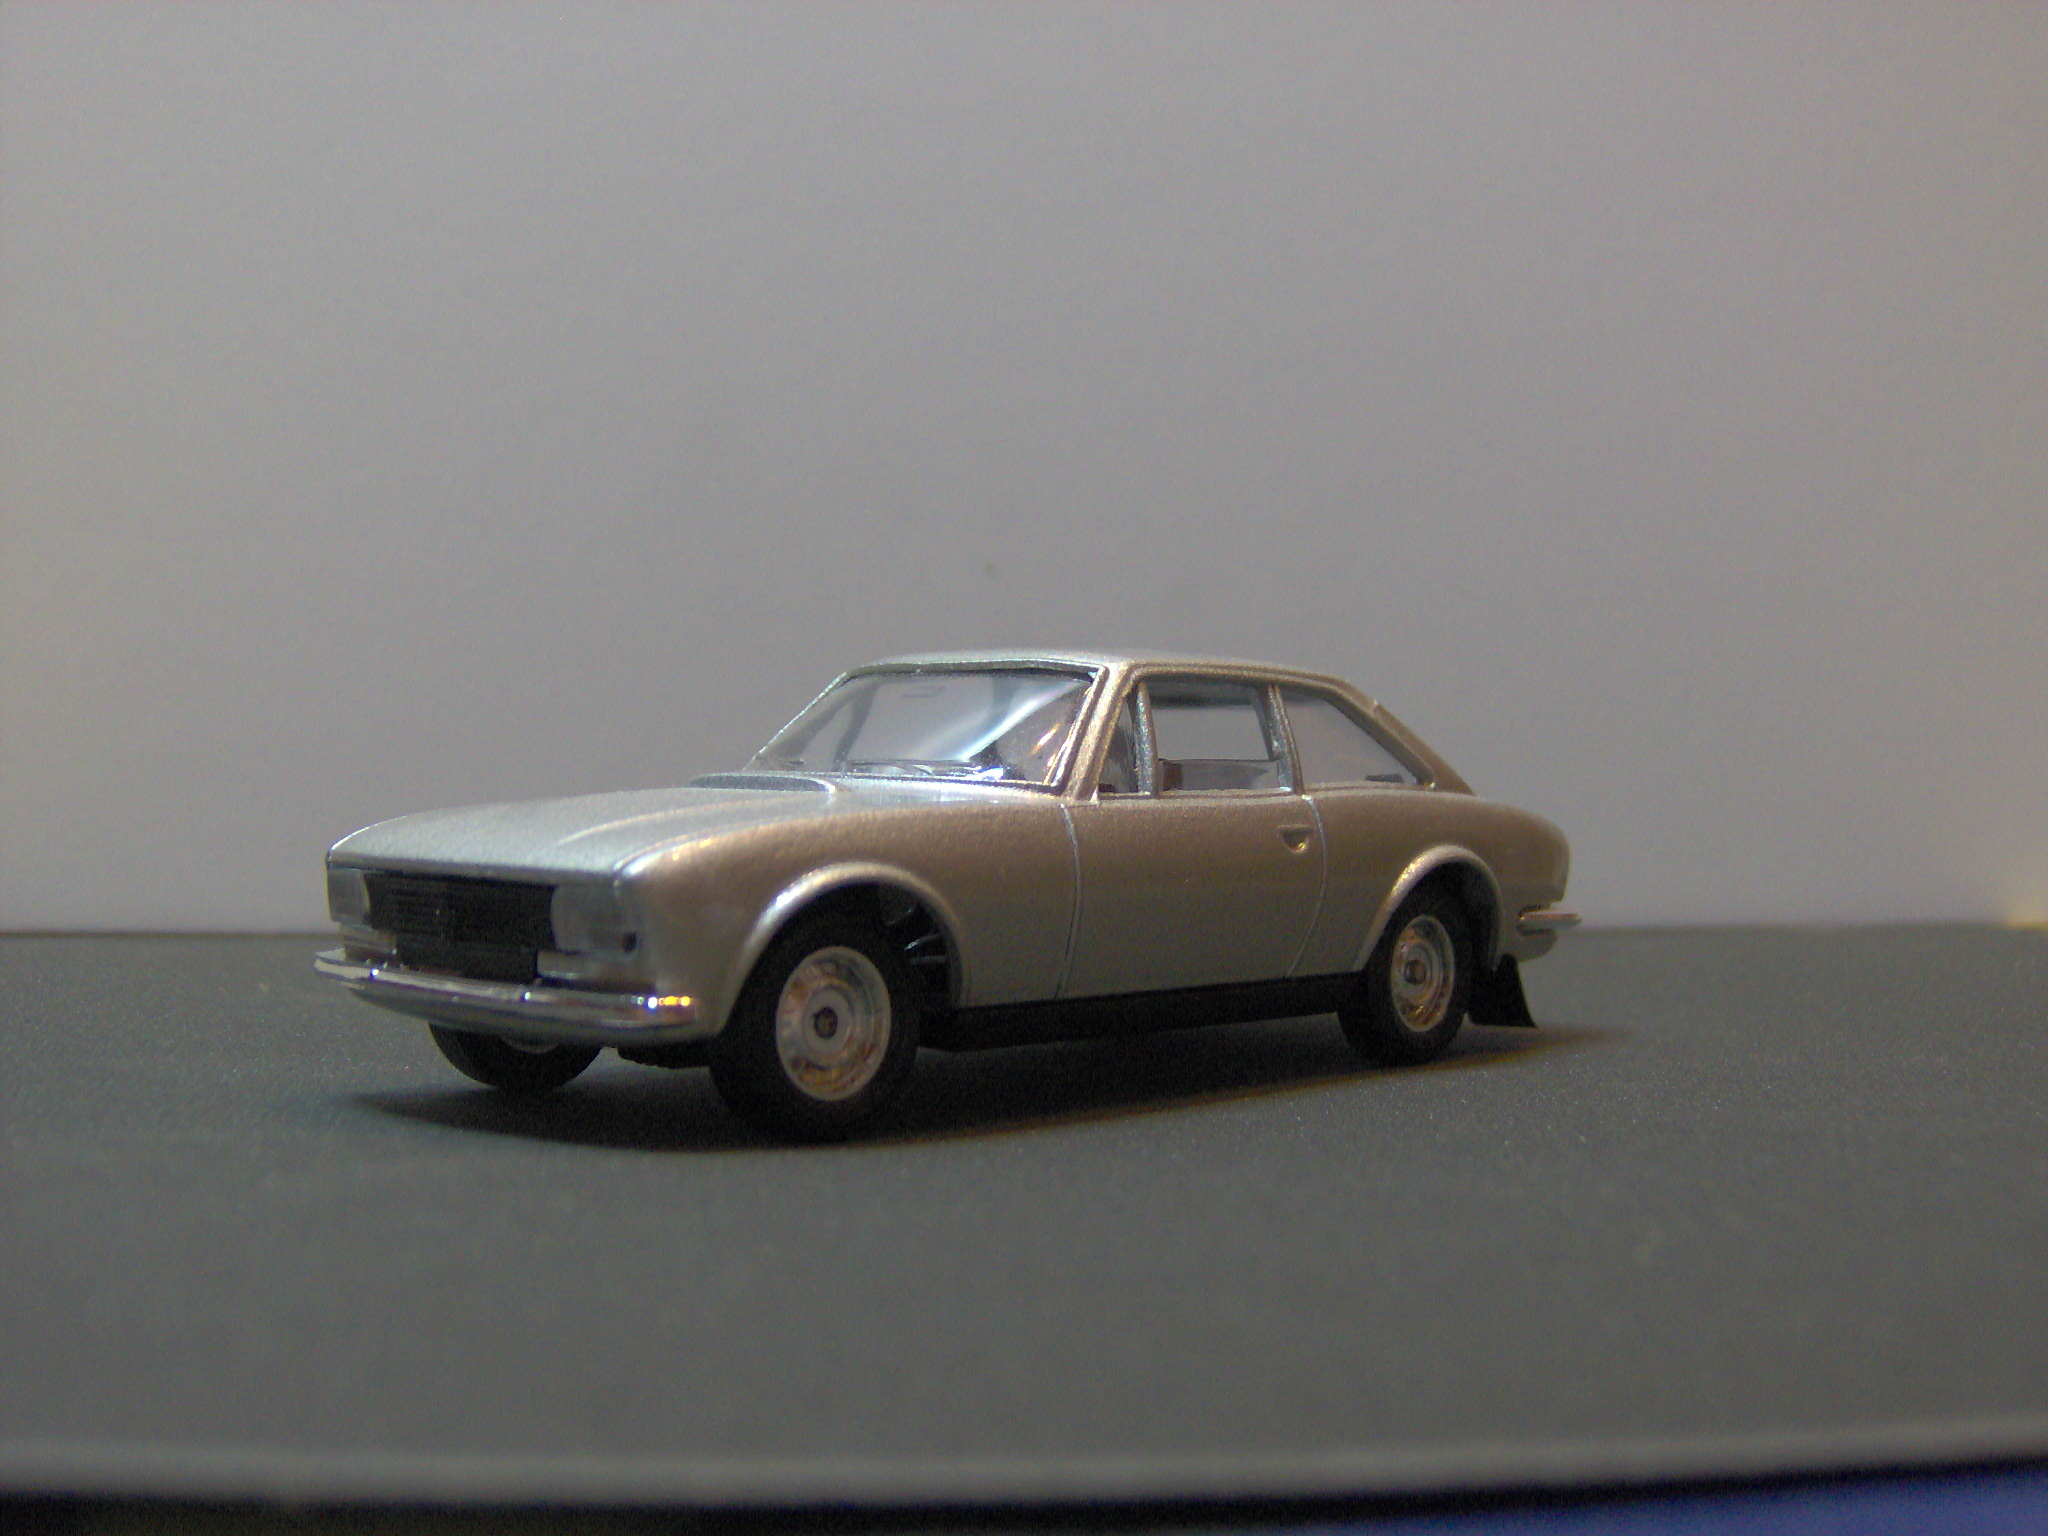 Peugeot 504 coupe V6 Solido